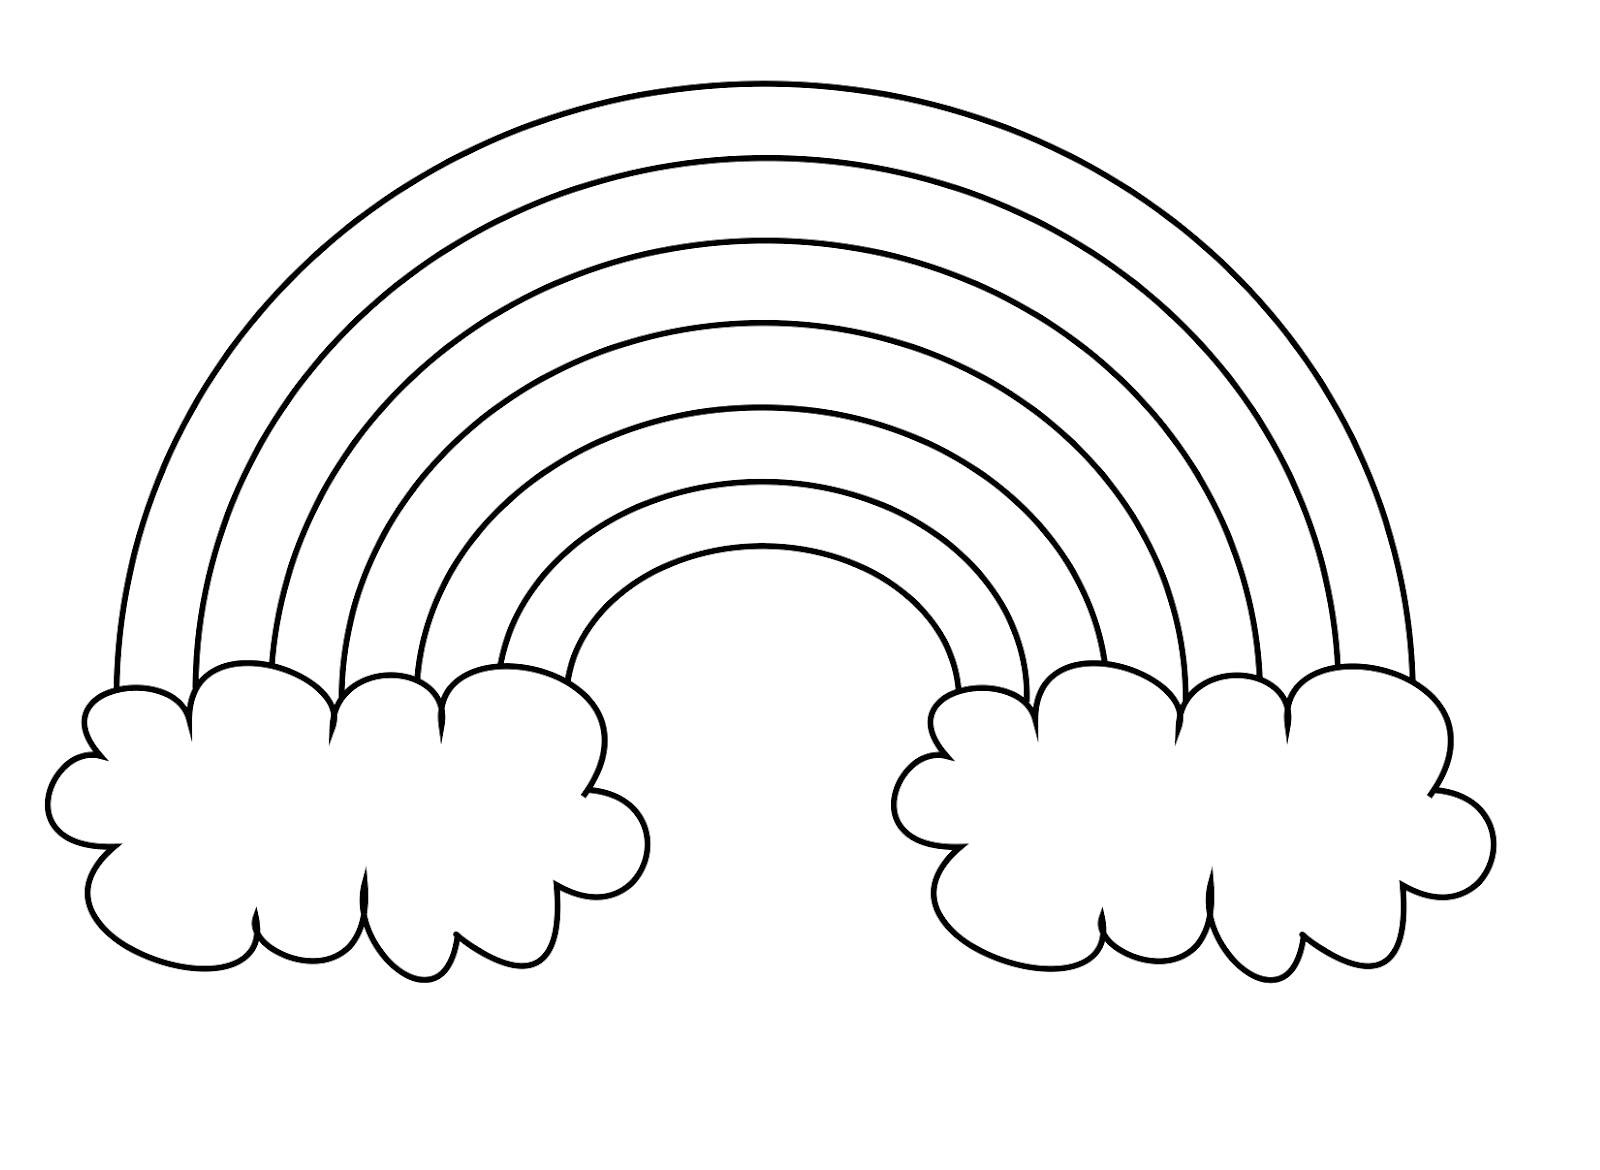 colouring sheet rainbow rainbow coloring pages free printables momjunction colouring rainbow sheet